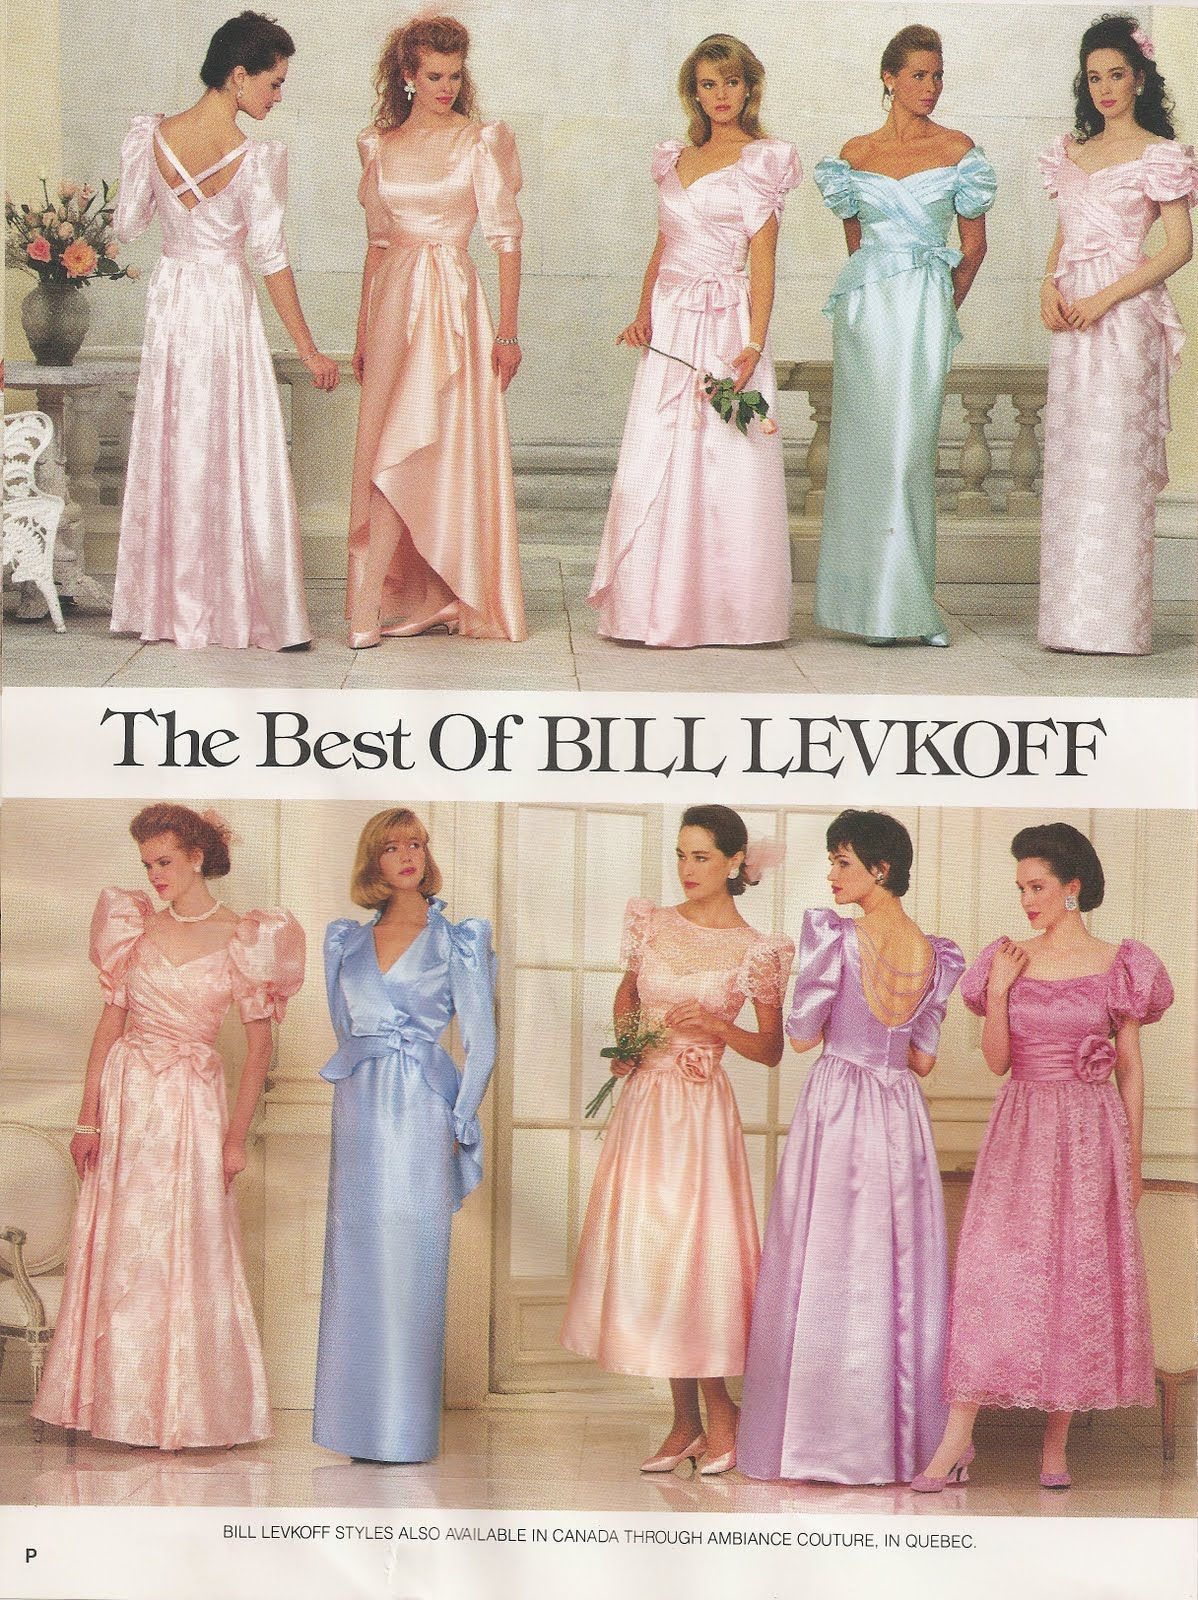 Bill levkoff dresses from the s s prom dresses i see mine